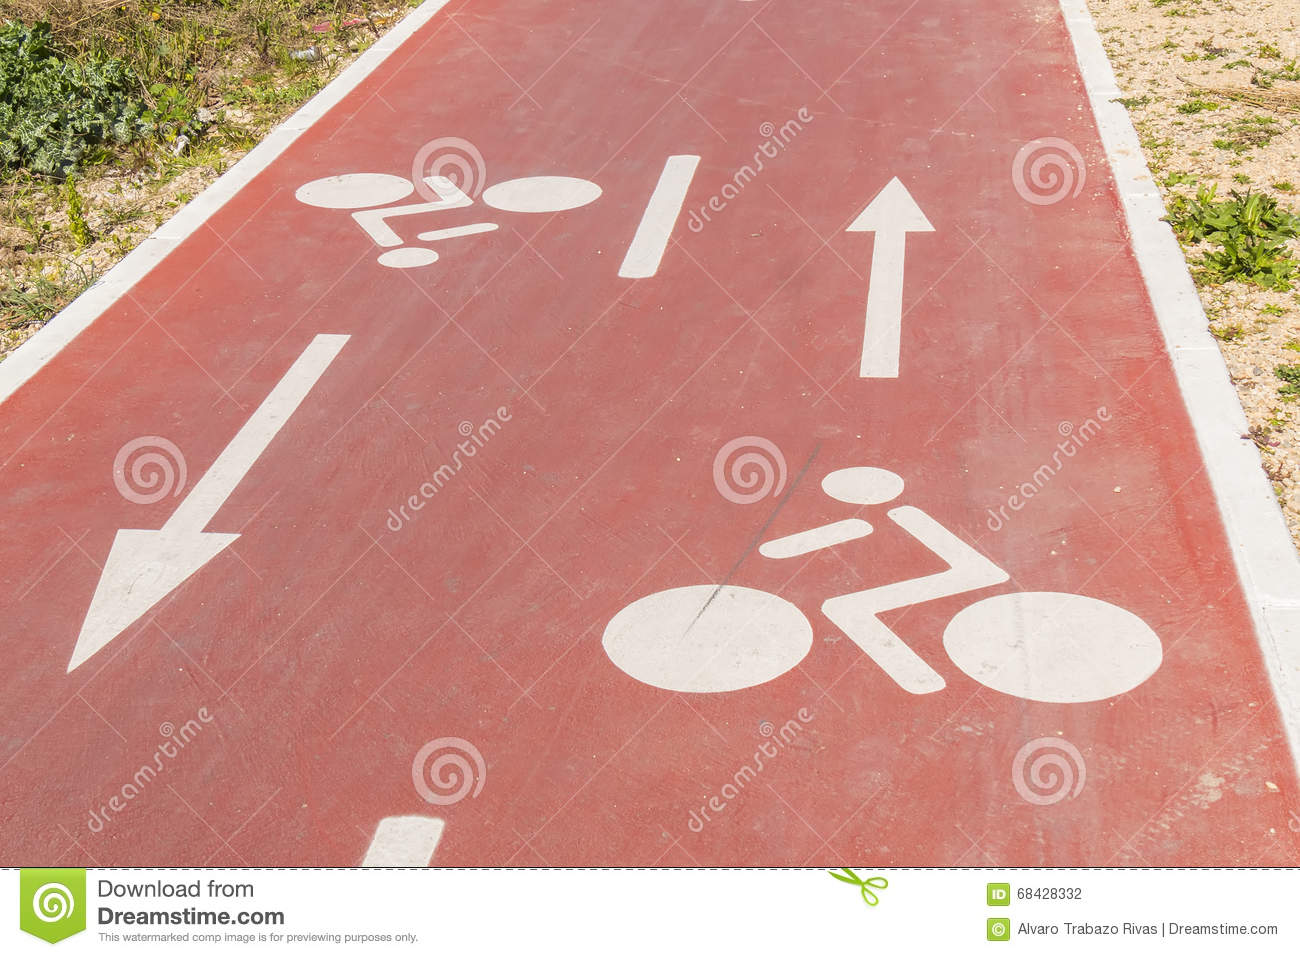 Traffic signs drawn in the Cycleway